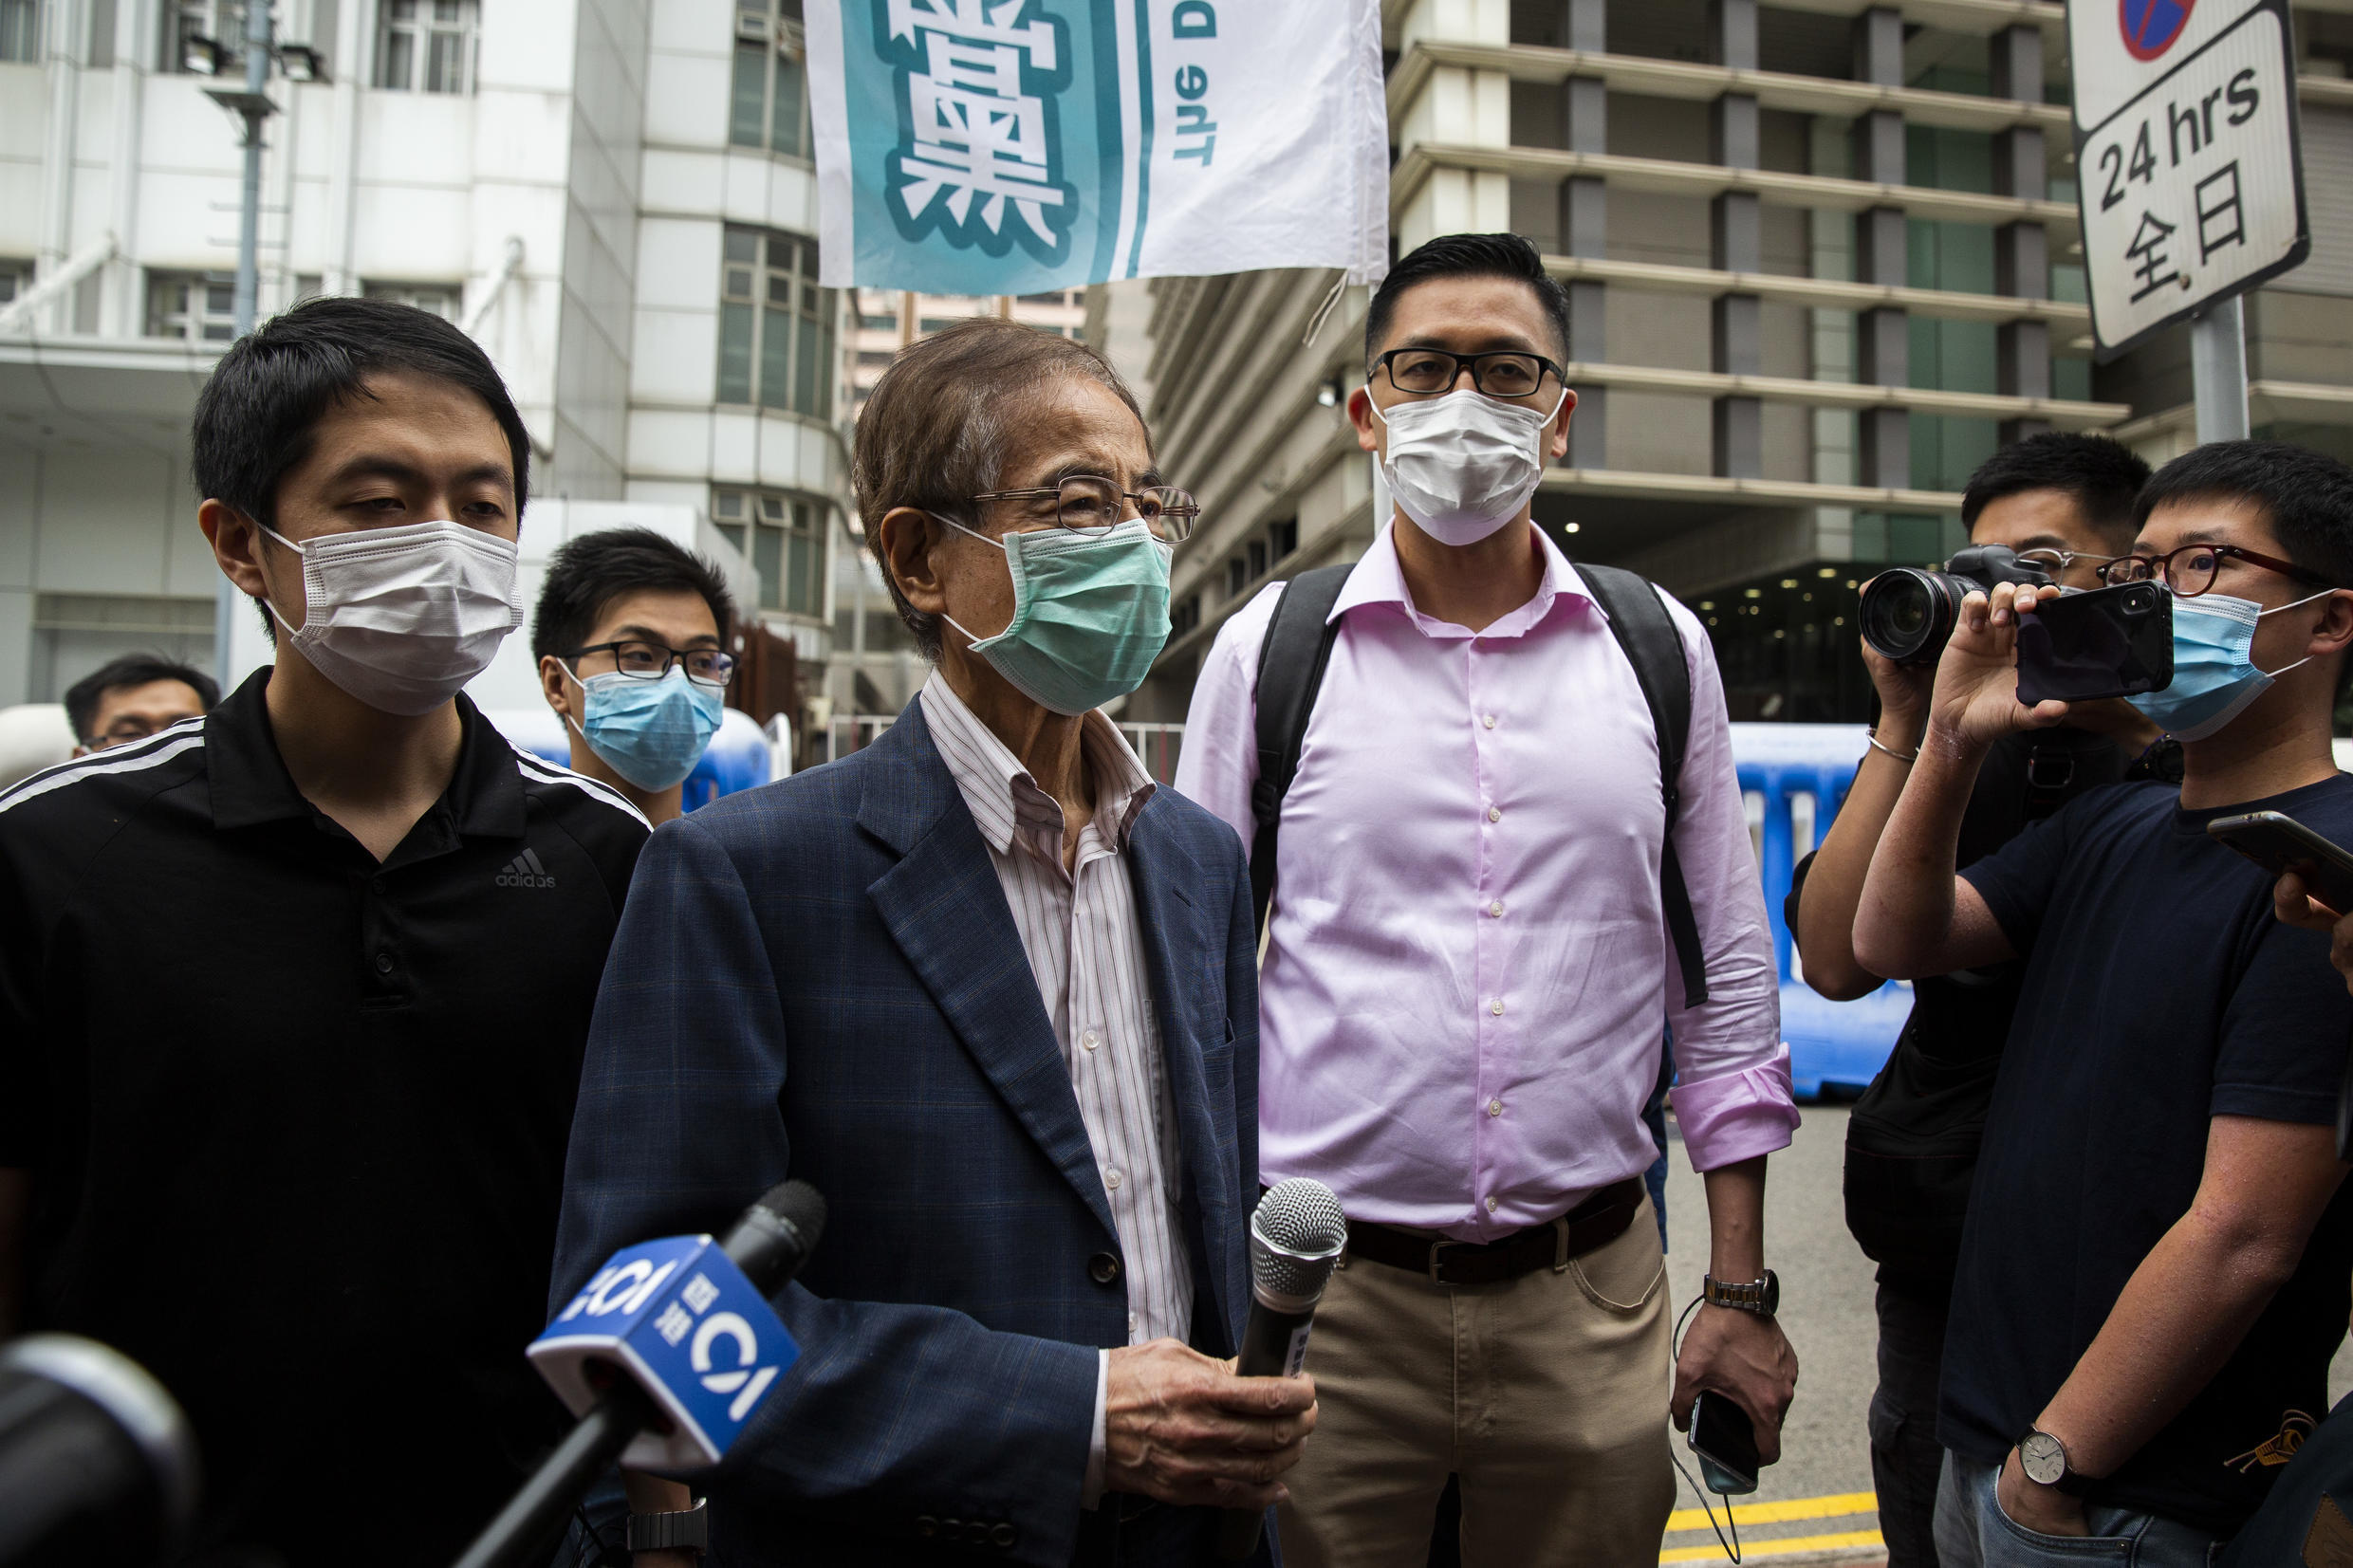 Former lawmaker and pro-democracy activist Martin Lee (centre L) talks to the media as he leaves the Central District police station in Hong Kong on April 18, 2020.